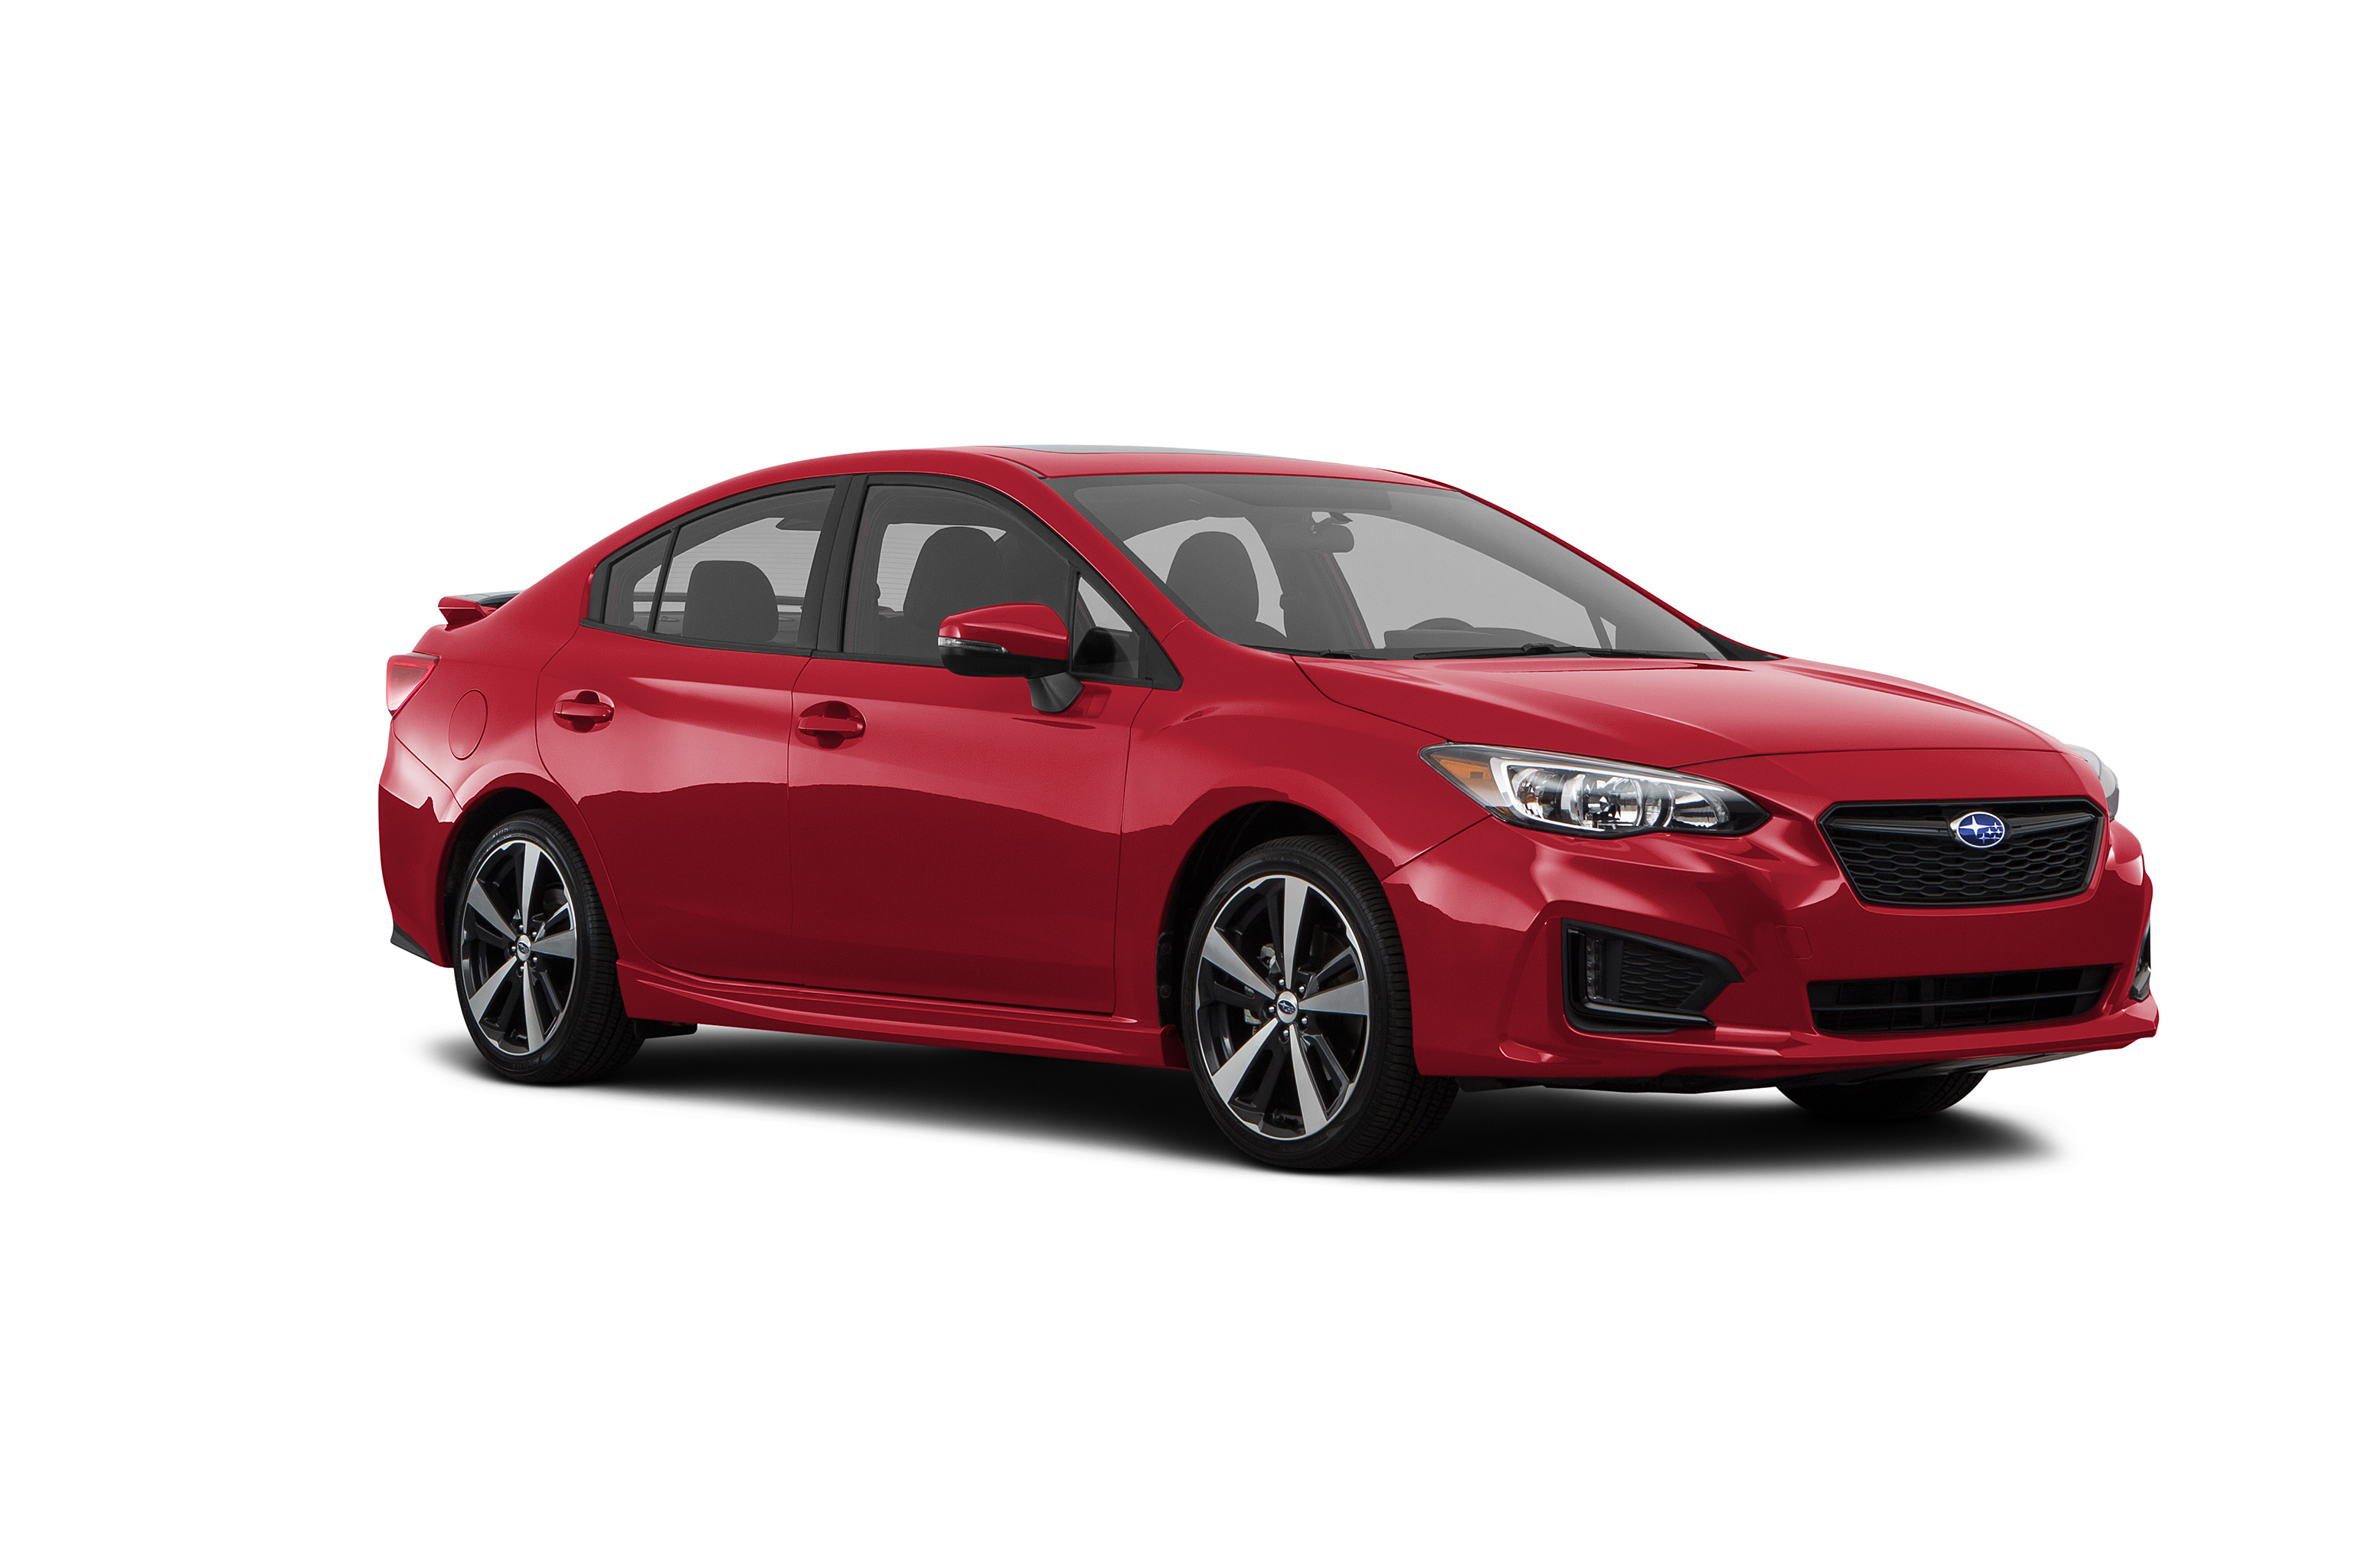 Shop Genuine 2017 Subaru Impreza Accessories From Subaru